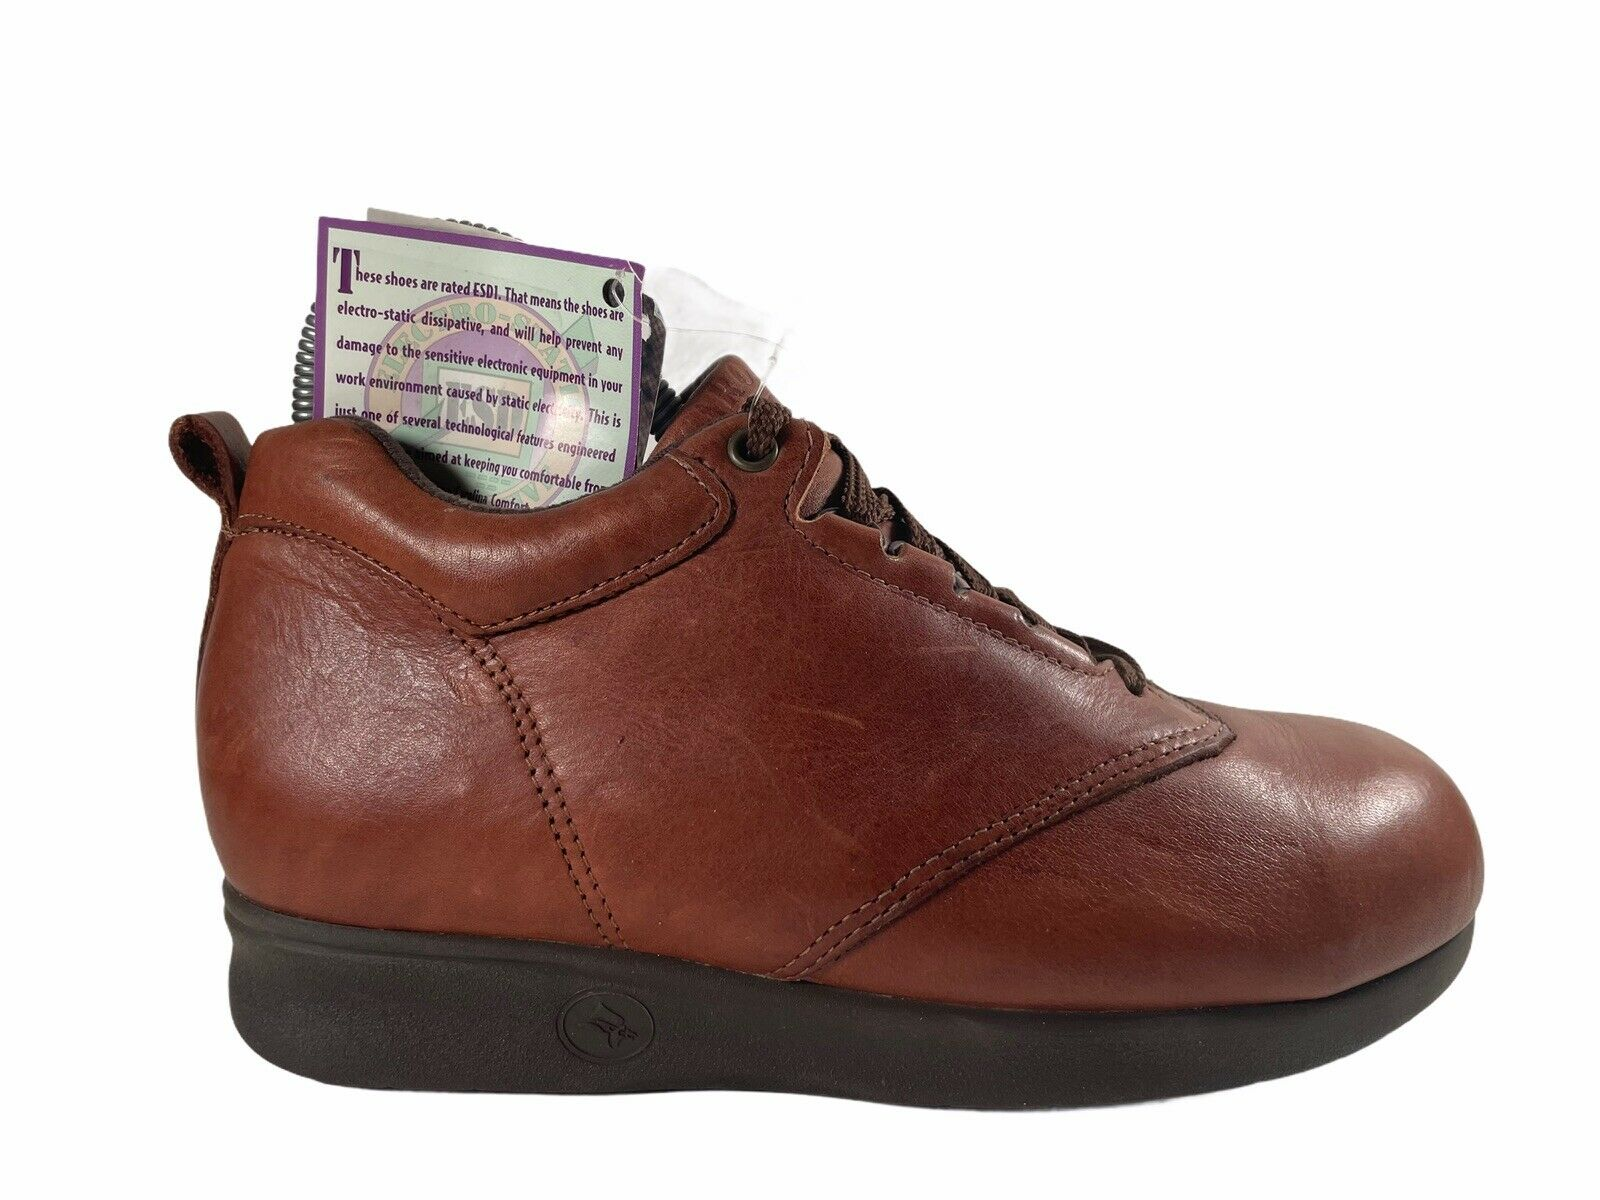 New Carolina Brown Leather Lace Up Safety Work Shoes Womens Size 6 W Wide READ